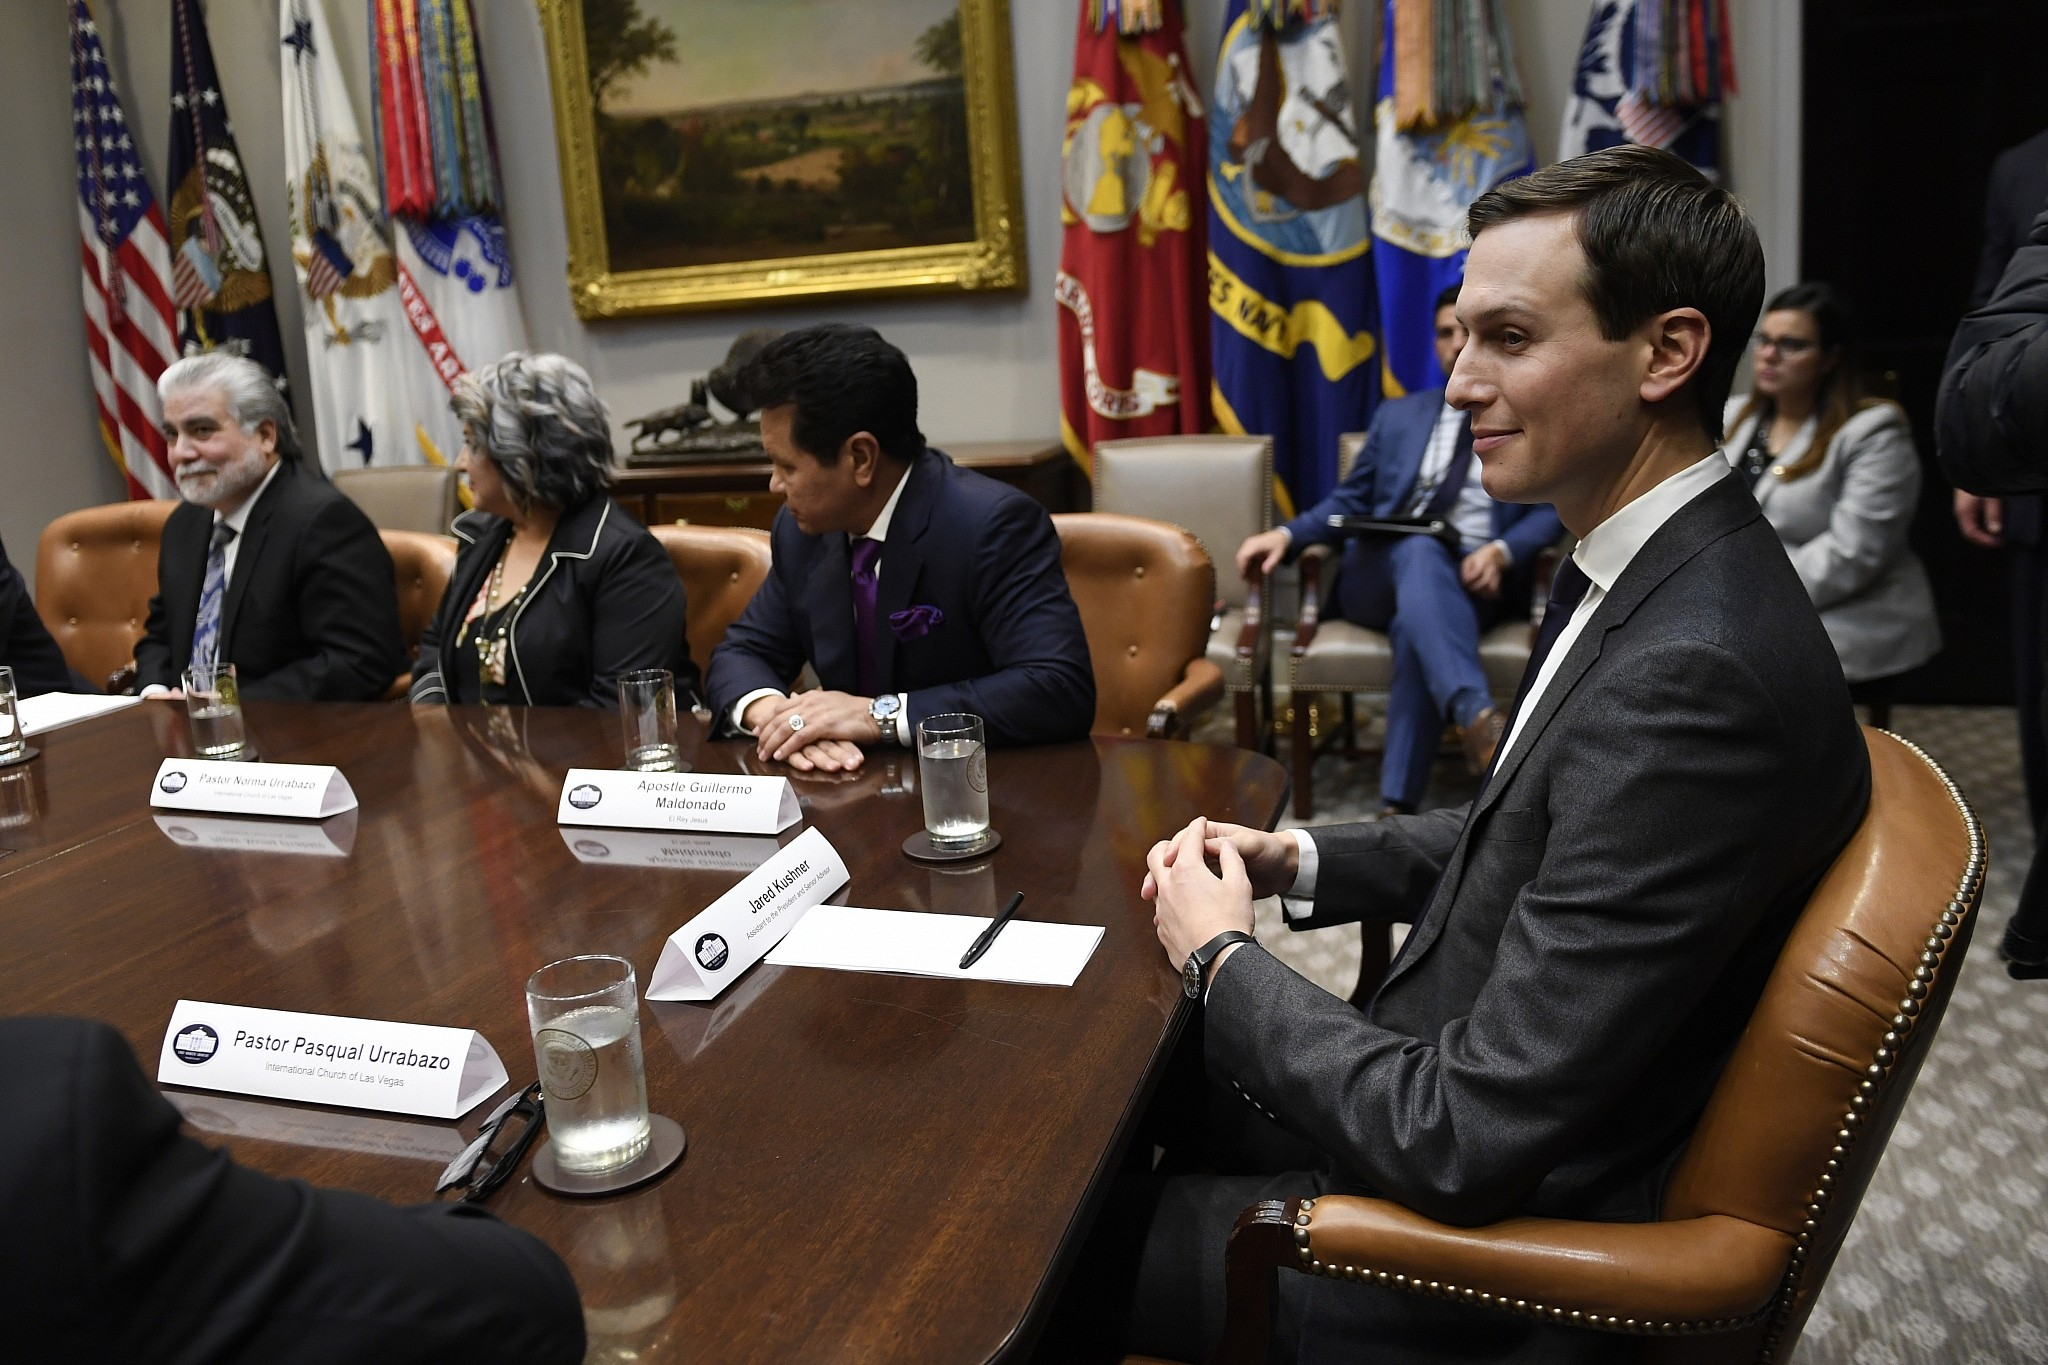 White House adviser Jared Kushner attends a meeting with President Donald Trump and Hispanic pastors in the Roosevelt Room of the White House in Washington Friday Jan. 25 2019